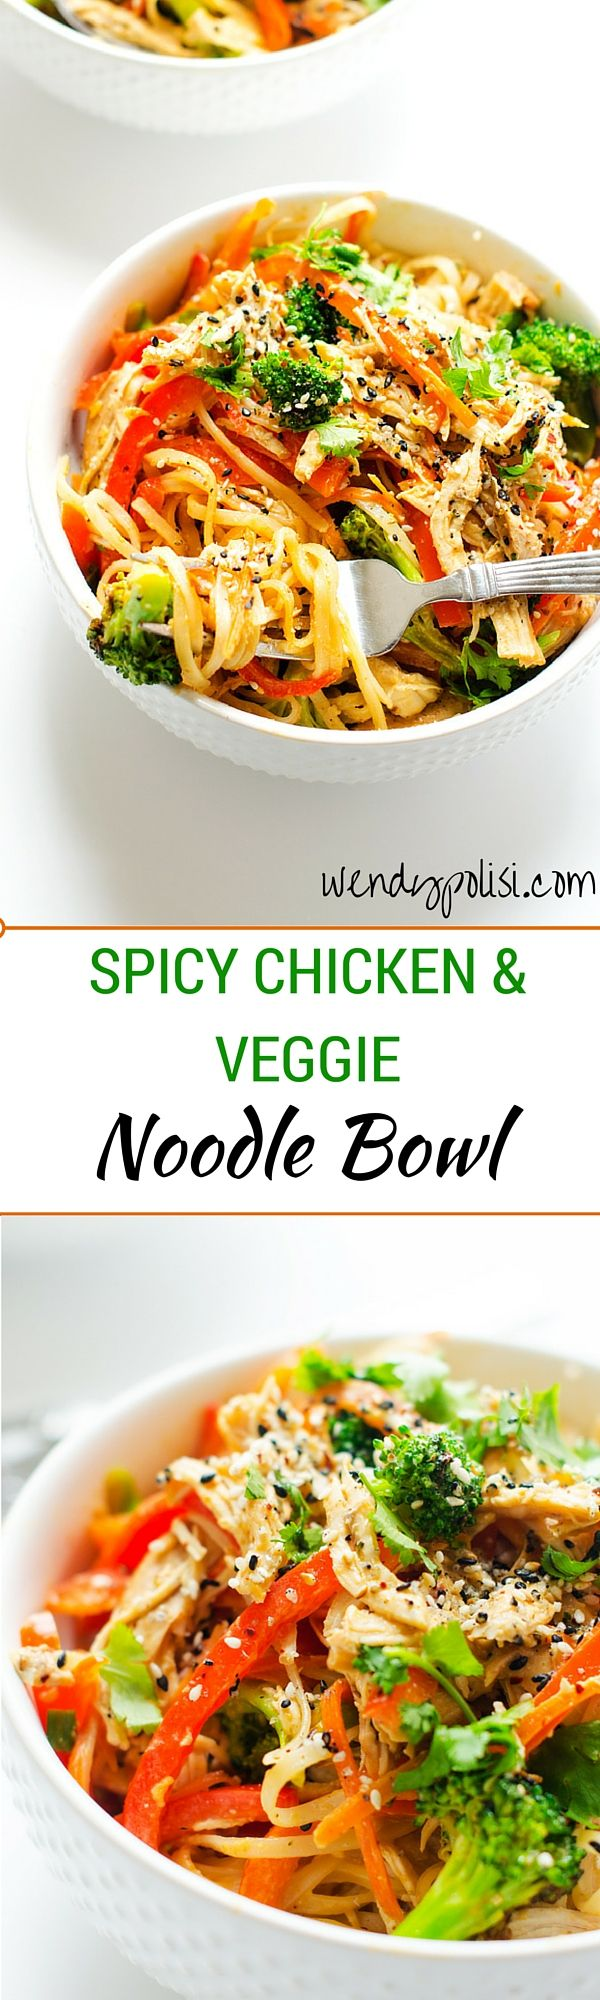 Spicy Chicken and Veggie Noodle Bowl - This gluten free noodle bowl is packed with veggies and so delicious!  - WendyPolisi.com